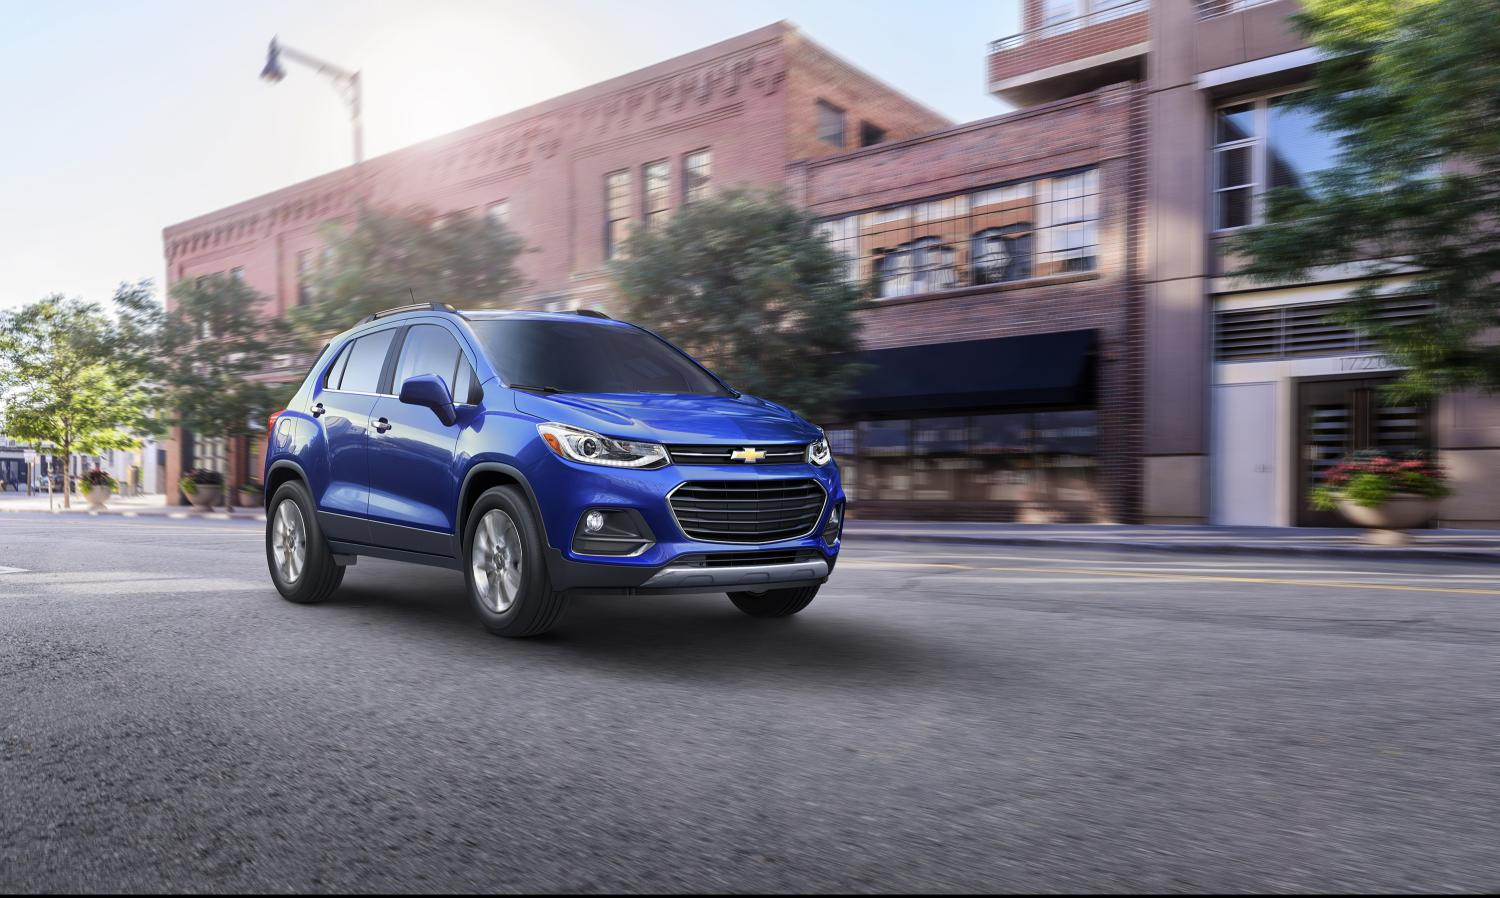 2017 Chevrolet Trax Priced In The United States From 21 895 Autoevolution